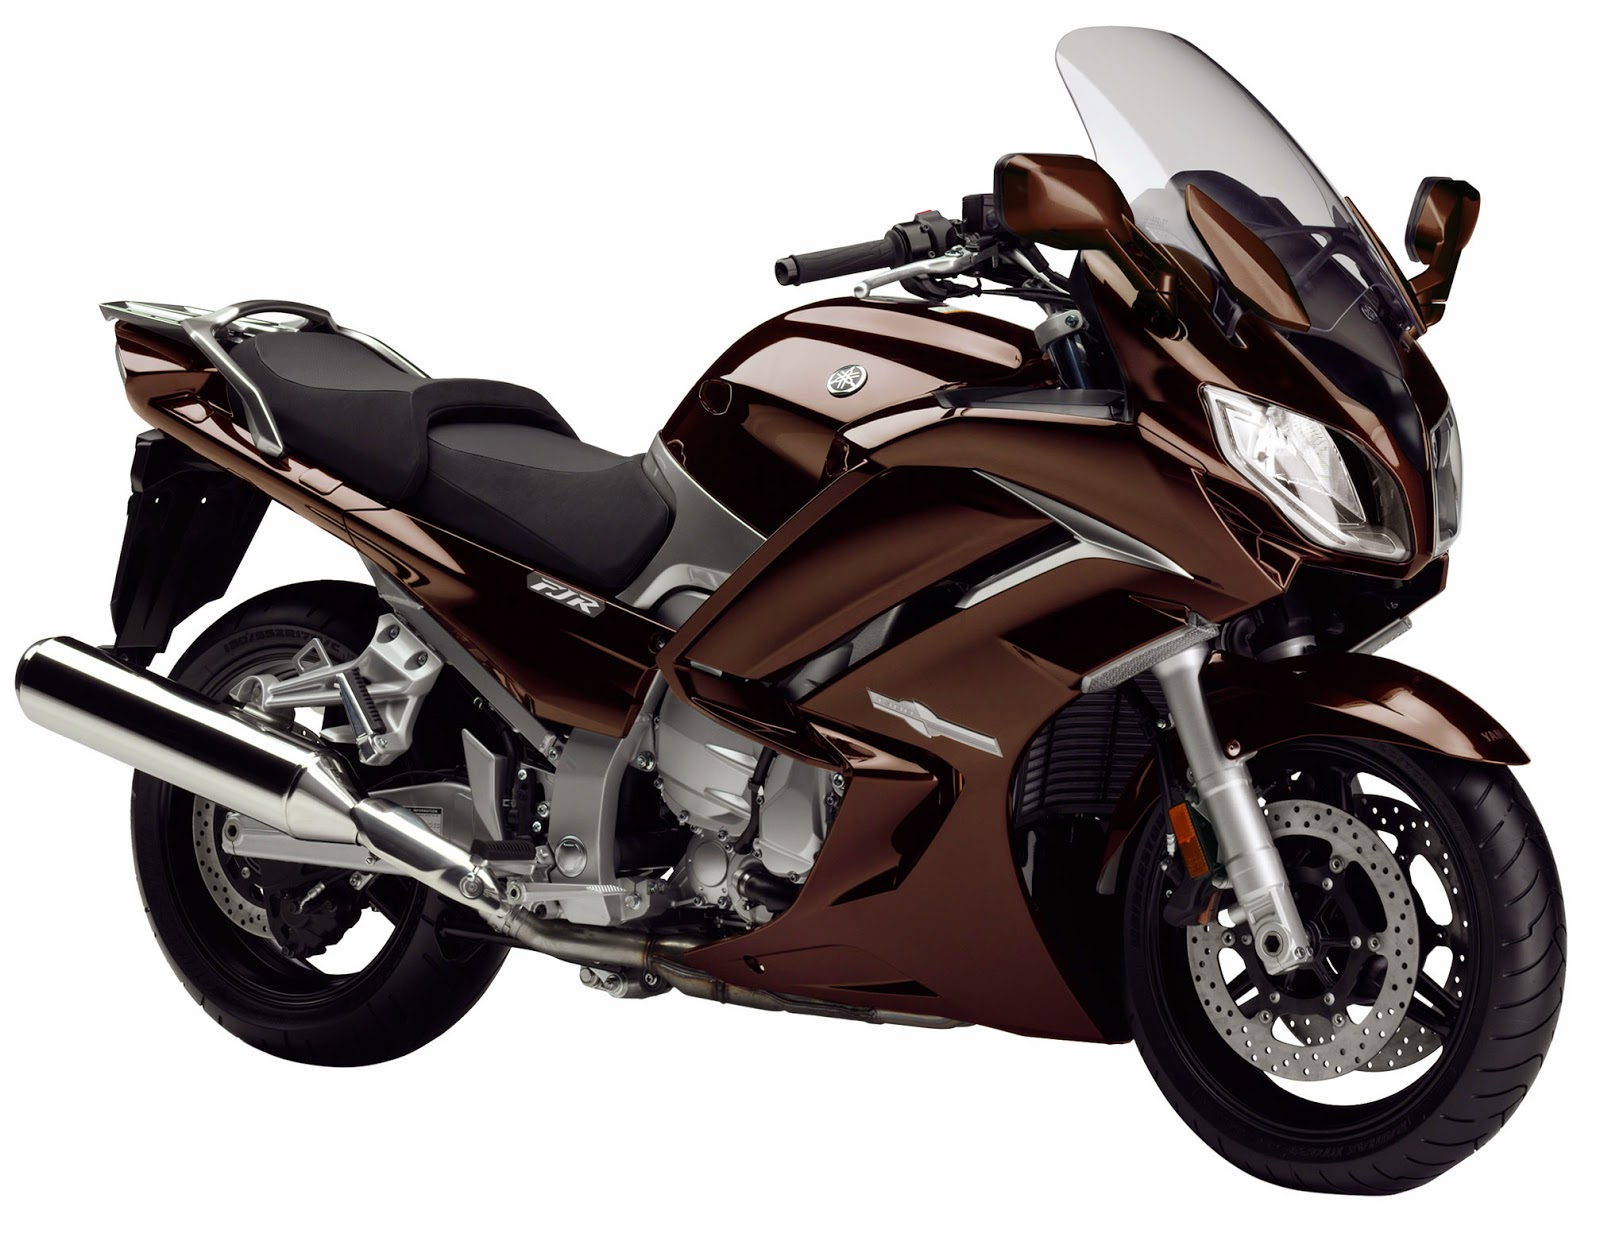 yamaha fjr1300 service and repair manual 2001 2013 share. Black Bedroom Furniture Sets. Home Design Ideas